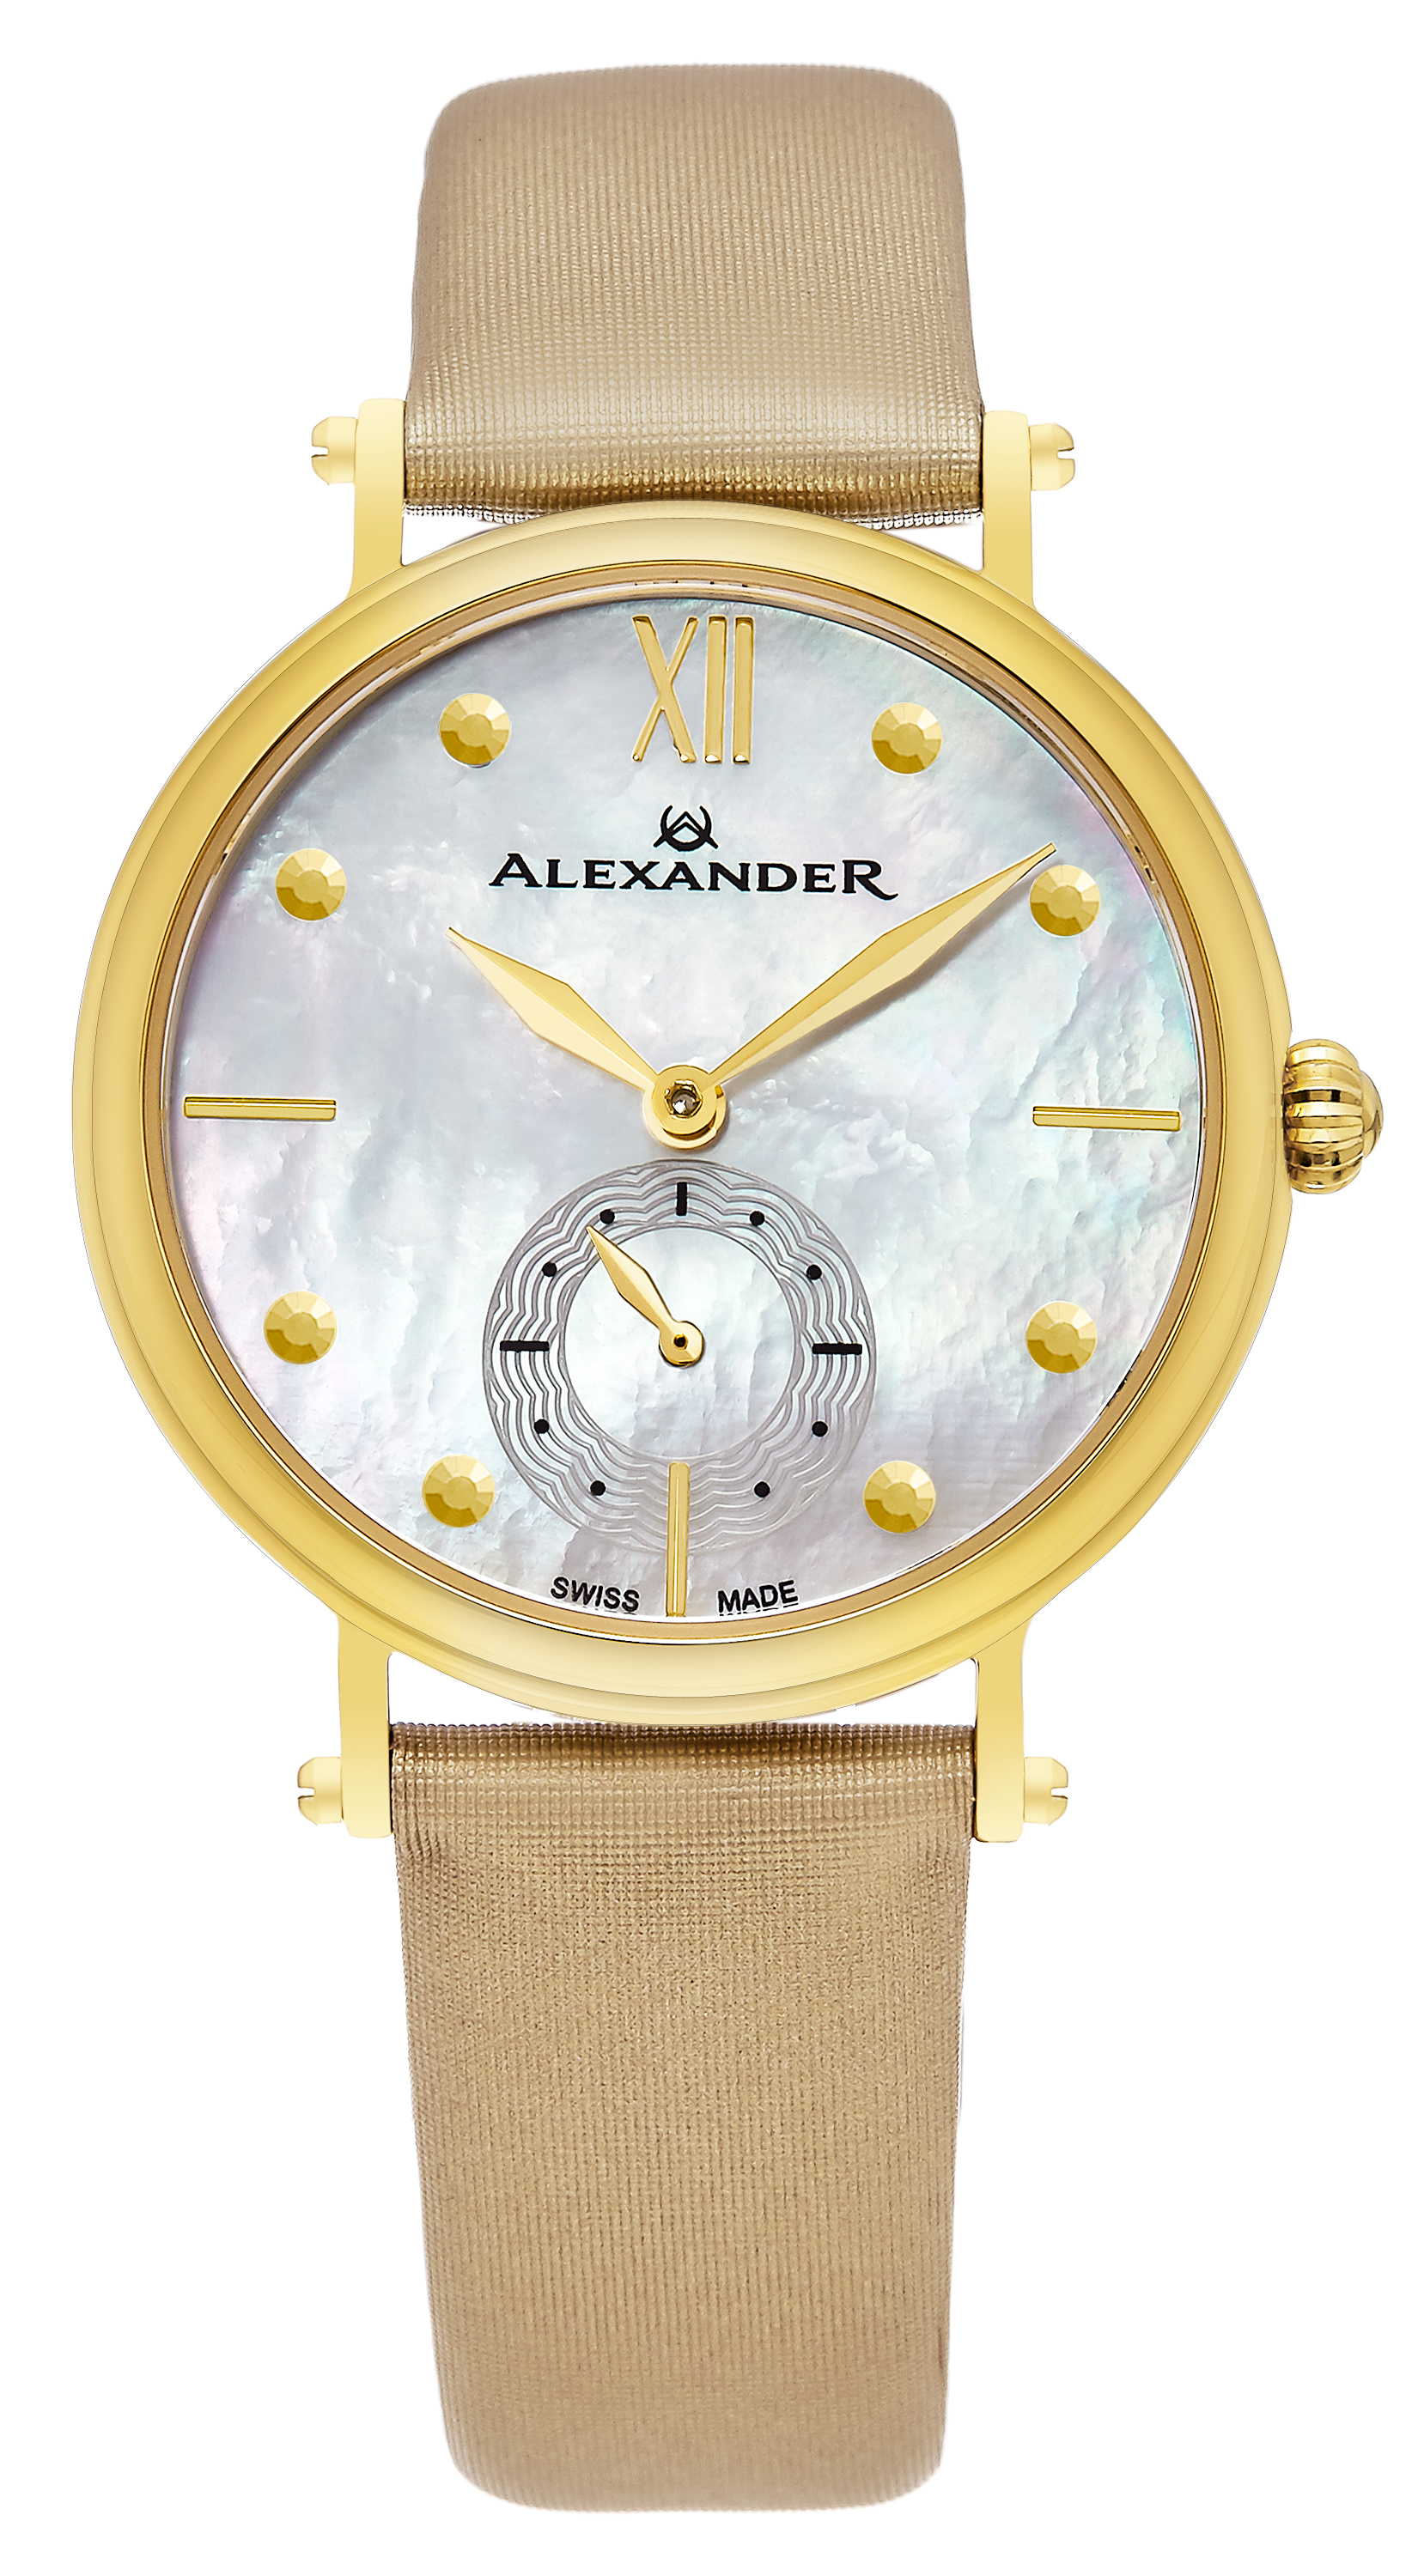 Alexander Monarch Dameklokke A201-02 Hvit/Sateng Ø34 mm - Alexander